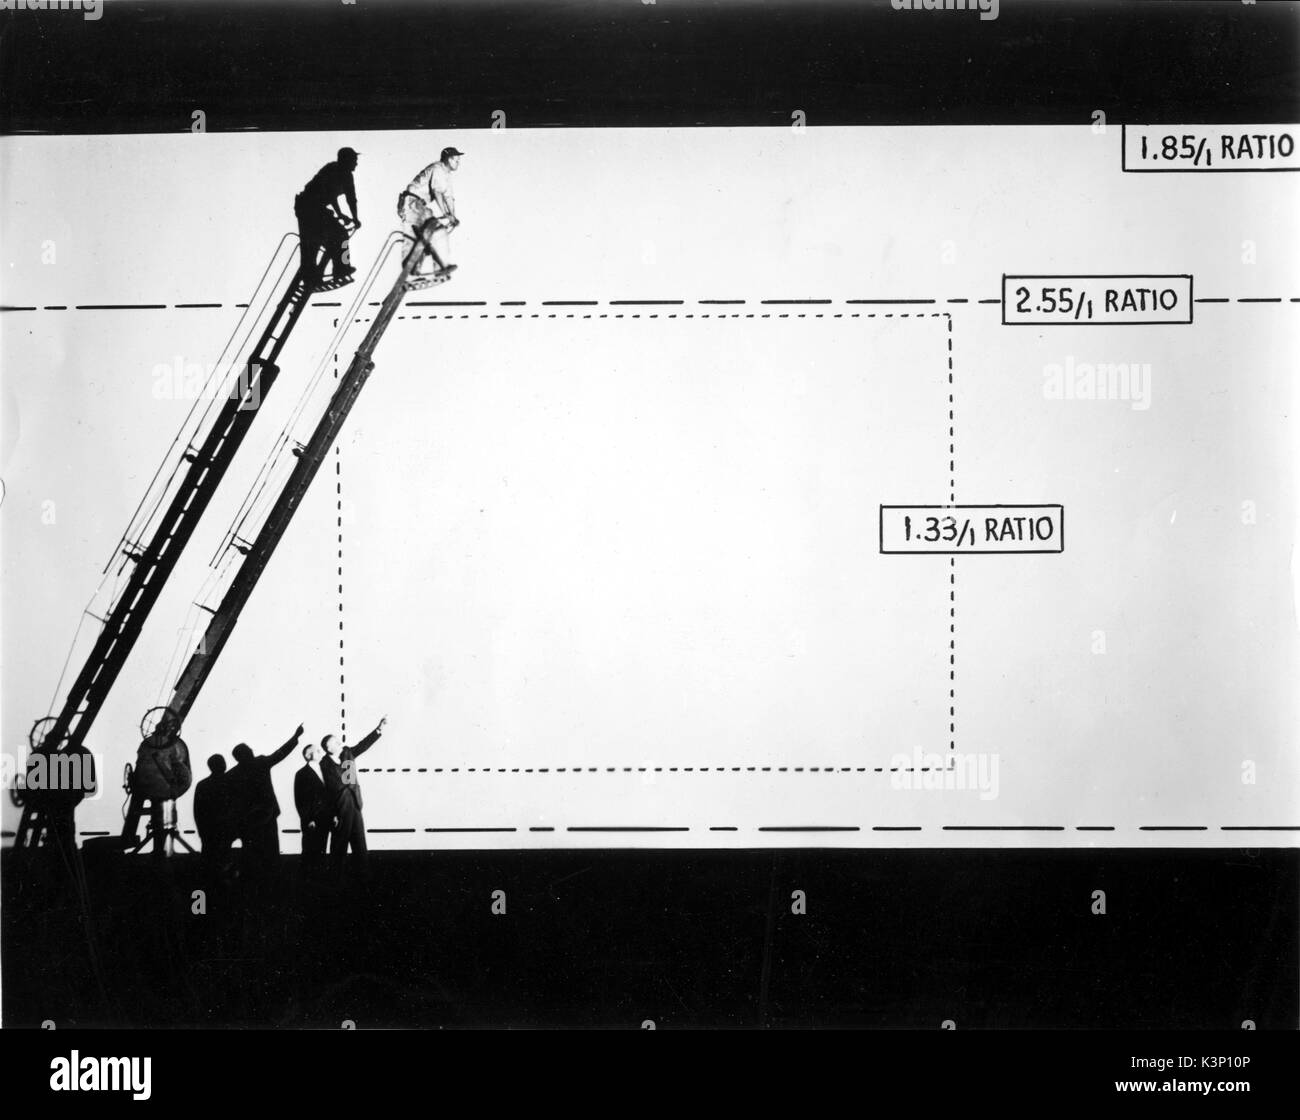 Y FRANK FREEMAN, Vice President of Paramount Pictures, shows ADOLPH ZUKOR, Paramount Board Chairman, the high and wide screen which is capable of showing VistaVision. the dotted line shows how the ordinary motion picture screen size compared with the big VistaVision screen. The broken line shows the comparison of 2.55/1 ration screen with high 1.85/1 ration VistaVision screen - Stock Image